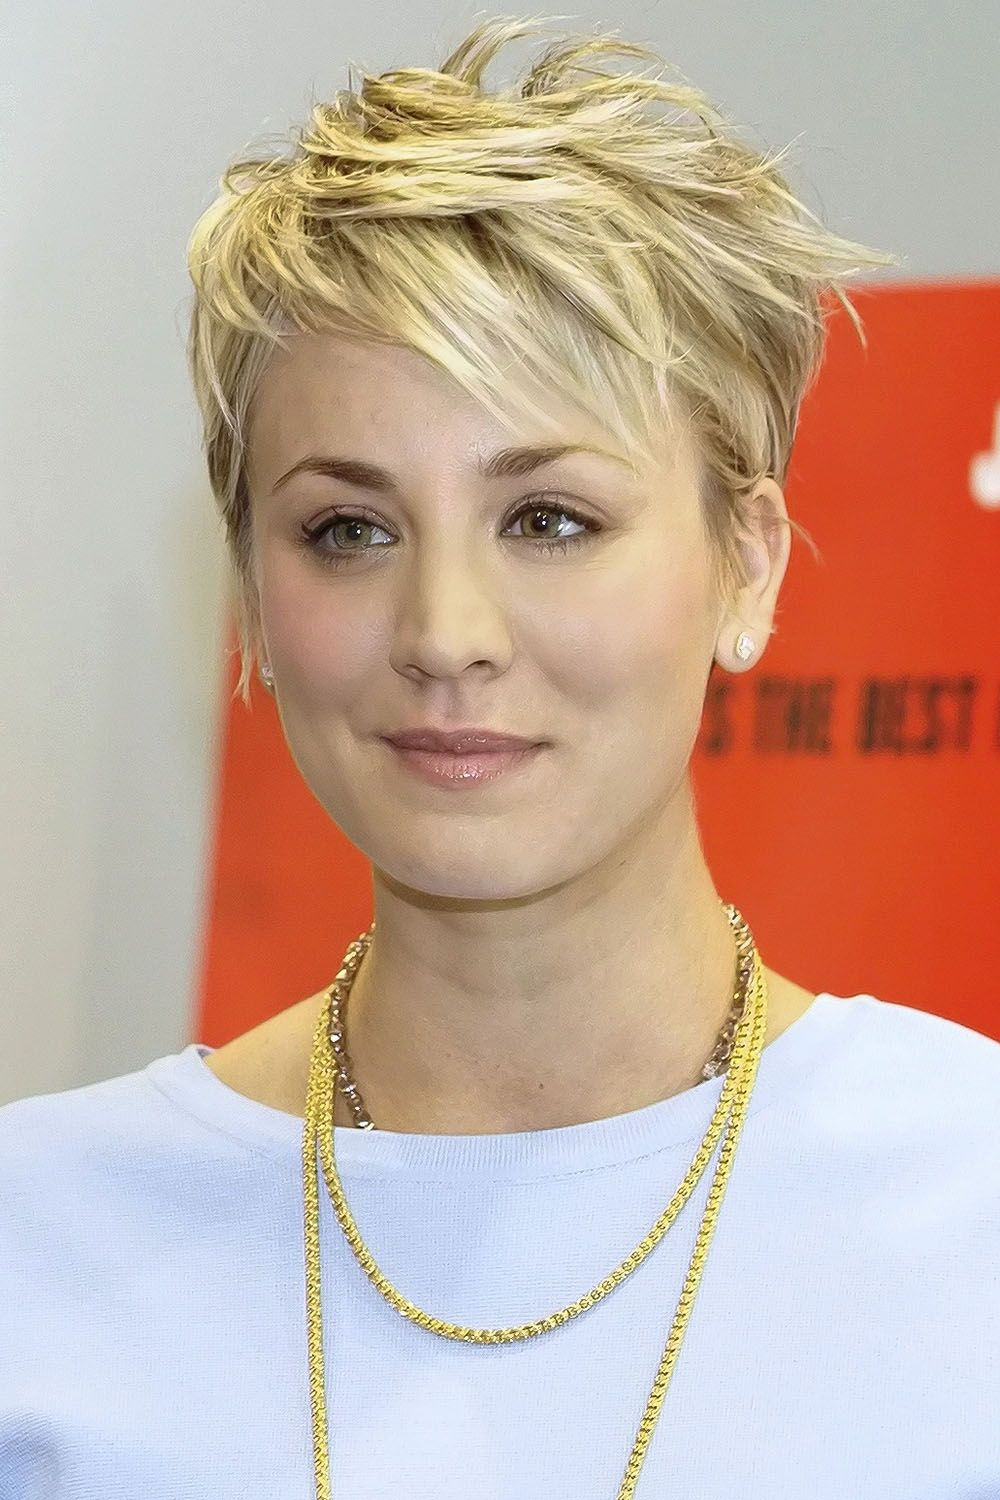 kaley cuoco hair style thelist the 10 hairstyles you ll see everywhere this 7802 | 1c32c21e6a8b85c51e819fbd082ccaa6